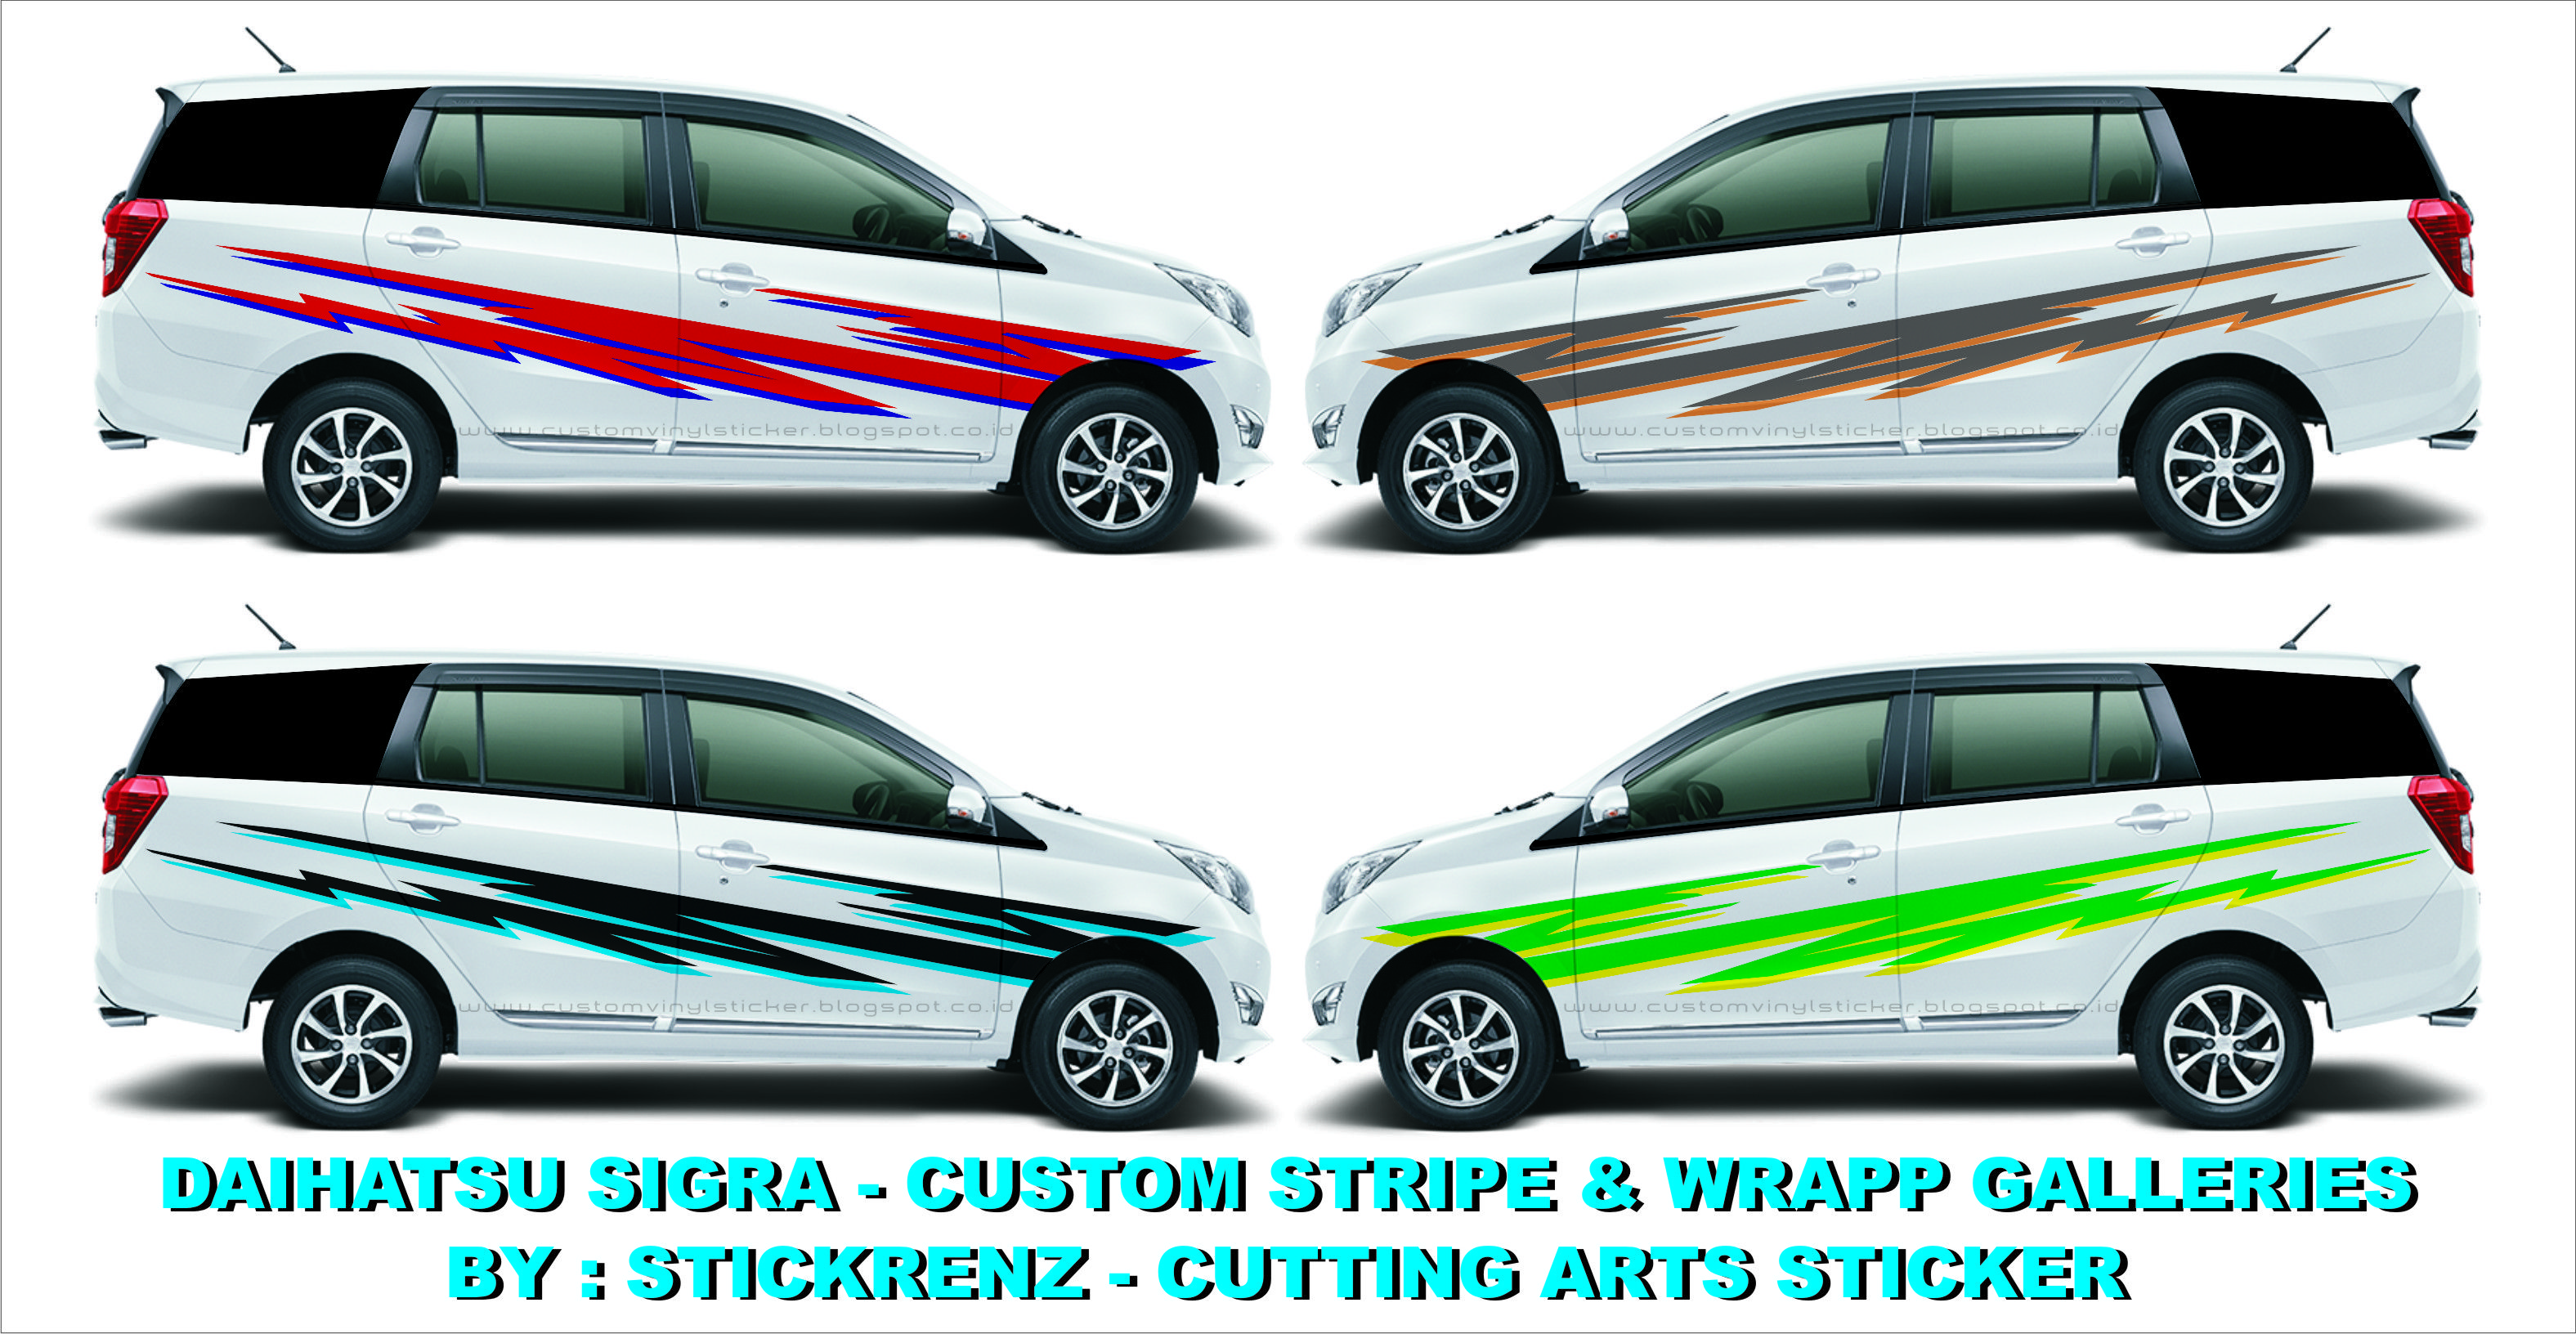 Car cutting sticker design - Daihatsu